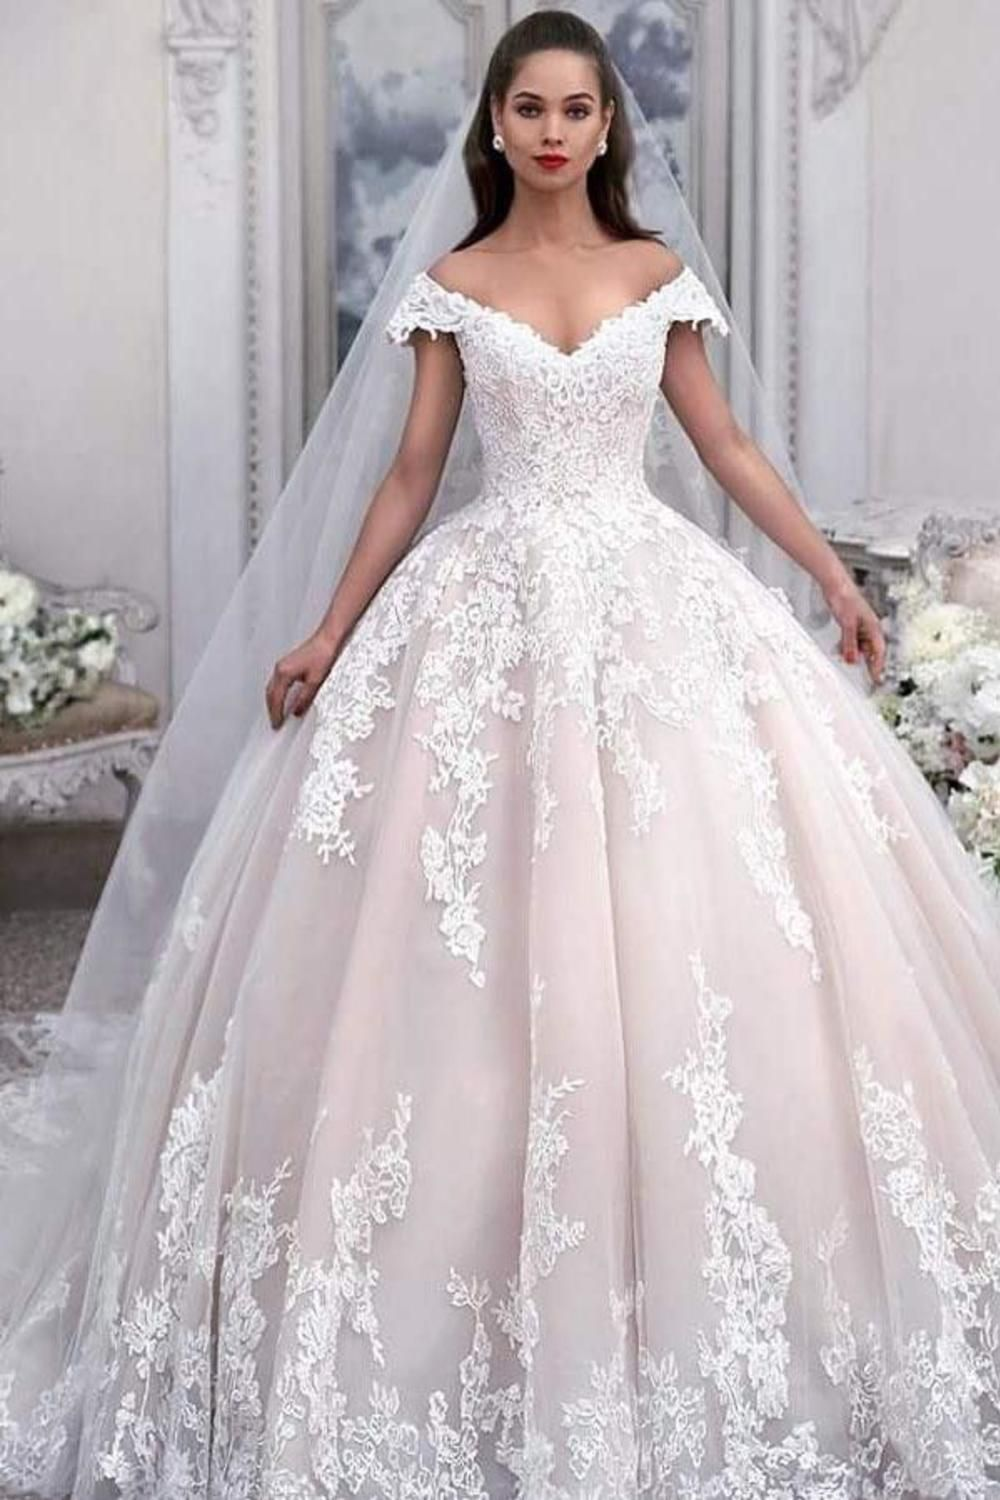 Photo of Robe de Mariée and tulle Robe de Bal Hors de l & # 39; épaule with applications, Robe de Mariée Princesse € 305.21 LBRPRMN1H92 – LaBelleRobe.com